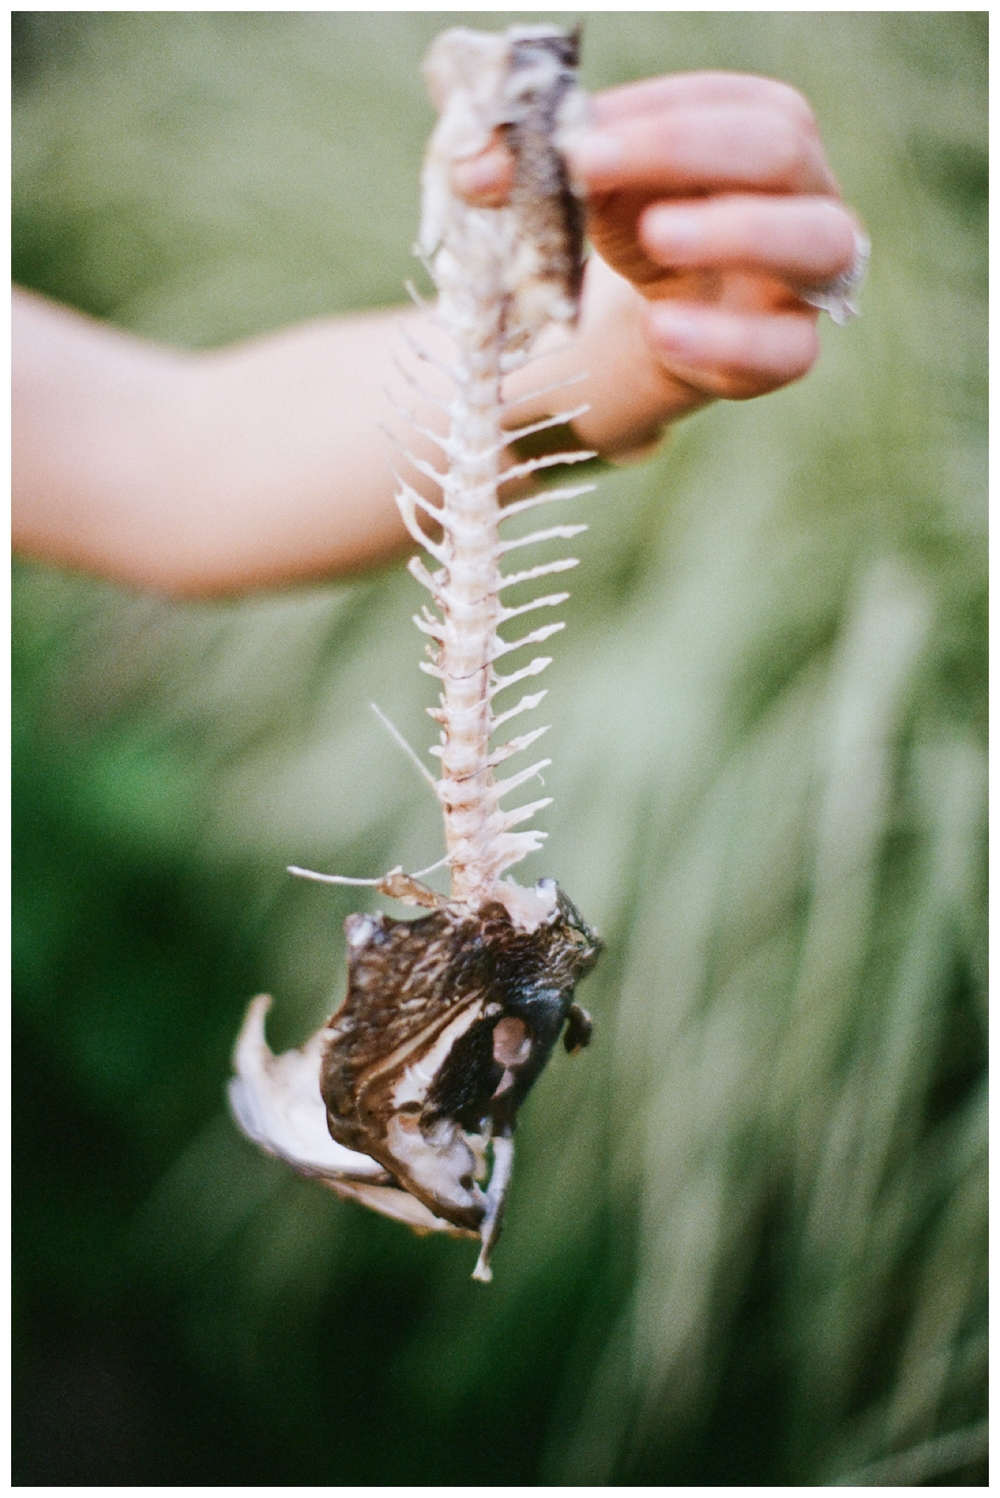 images by Lily Glass for Ginger and Birch shot on Kodak Portra 400